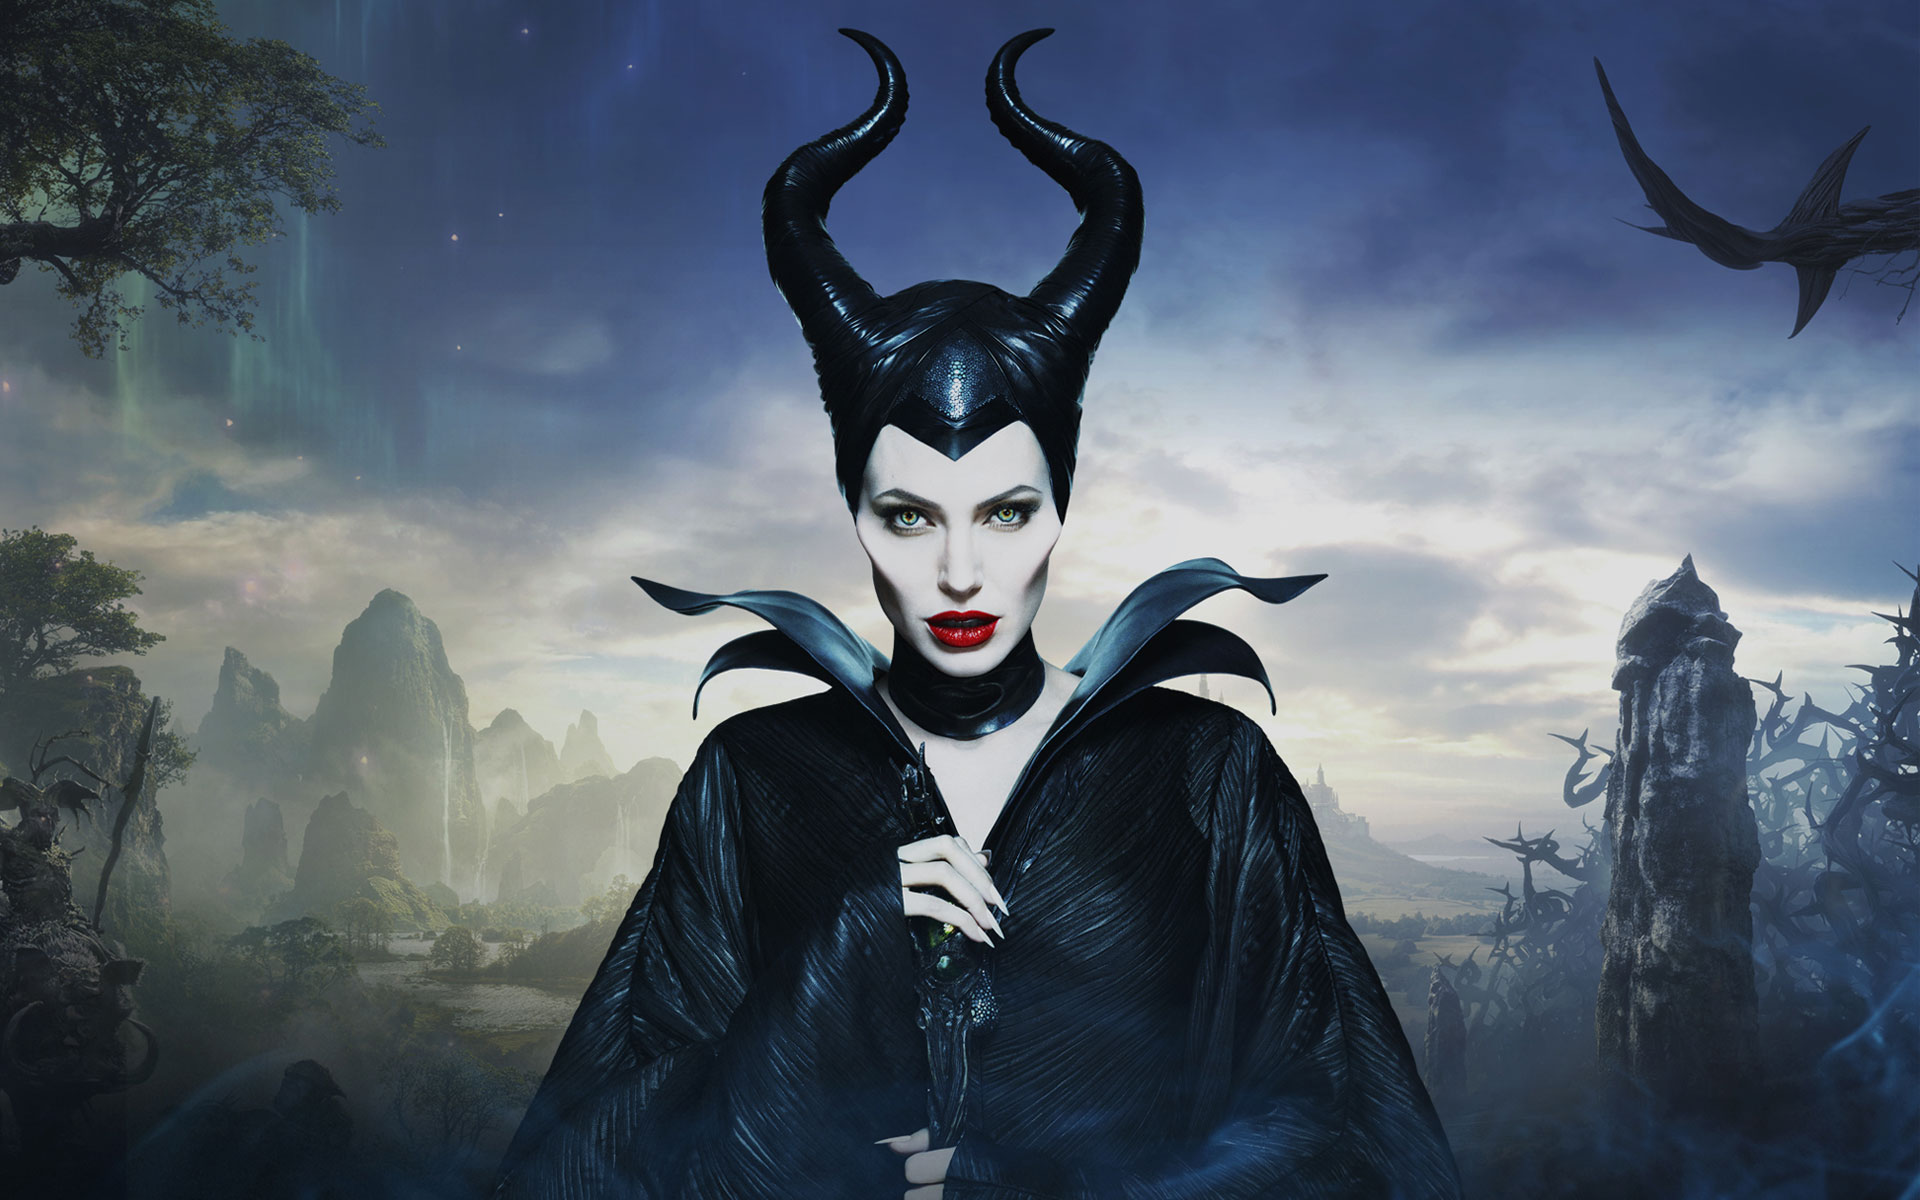 Maleficent wallpaper 1920x1200 80284